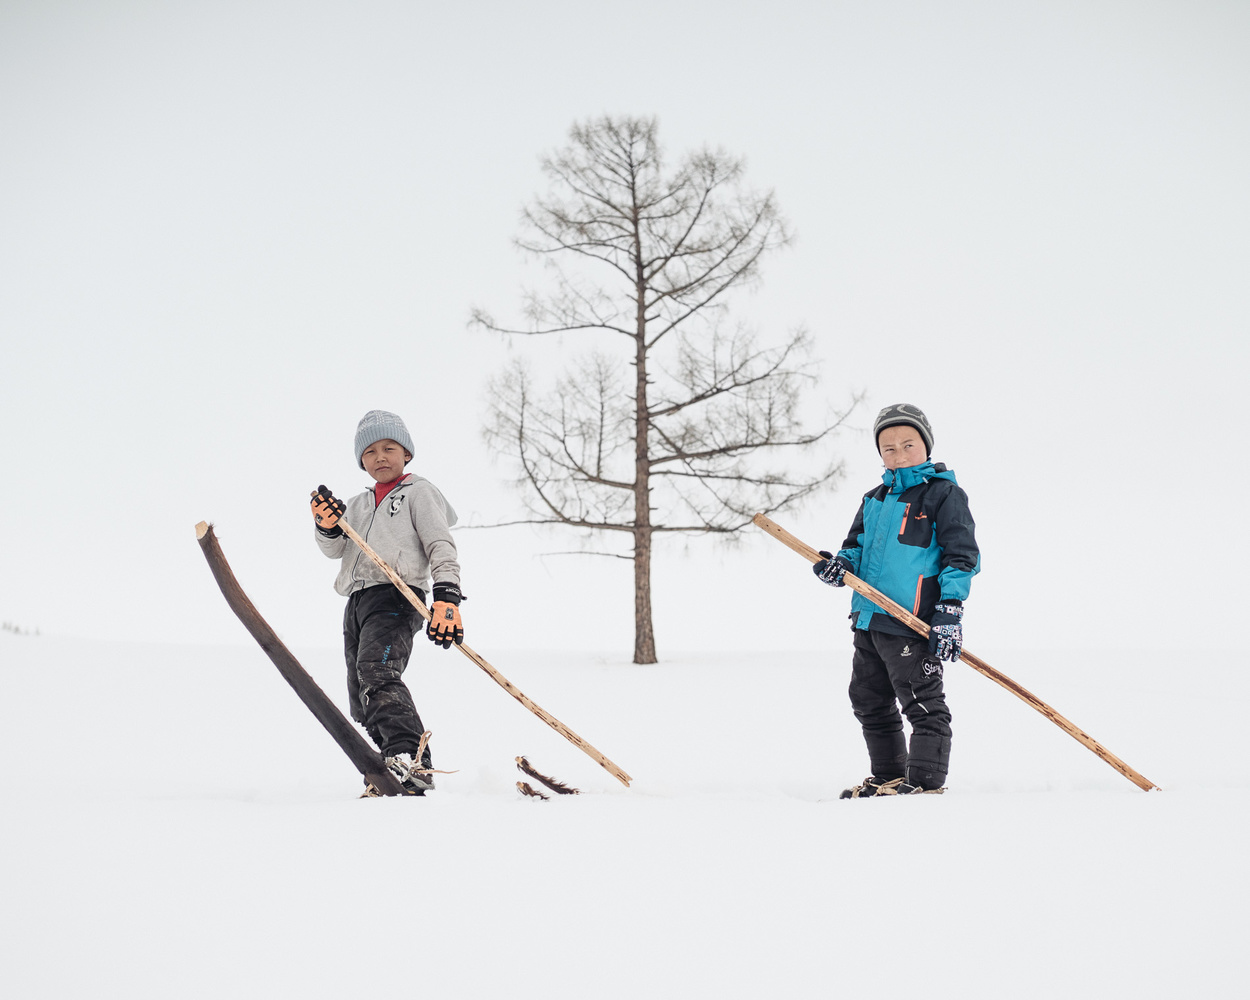 native-chinese-skiers-jordan-manley-photograph